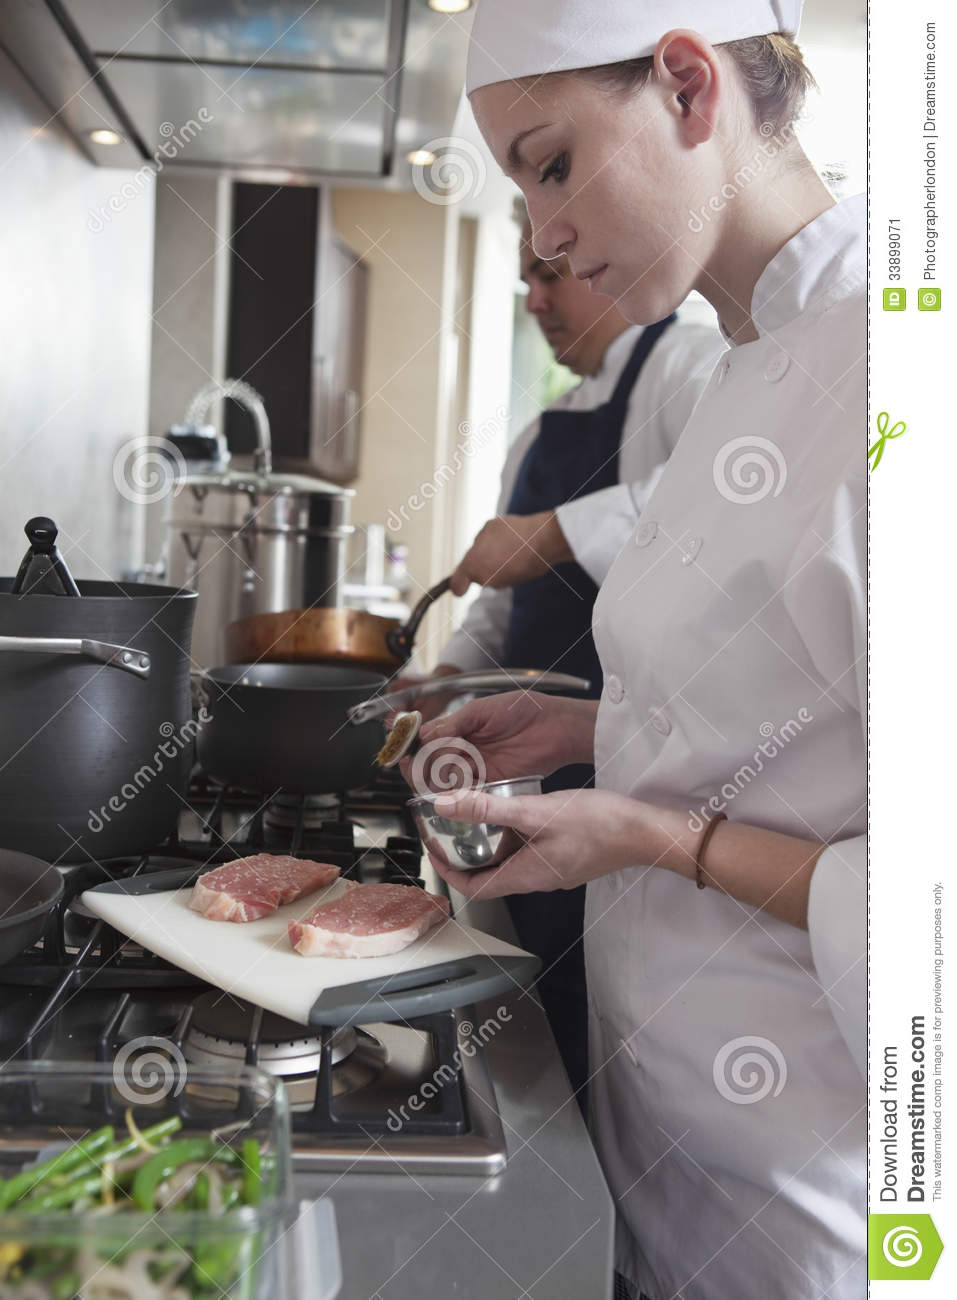 Female Chef Seasoning Raw Meat In Kitchen